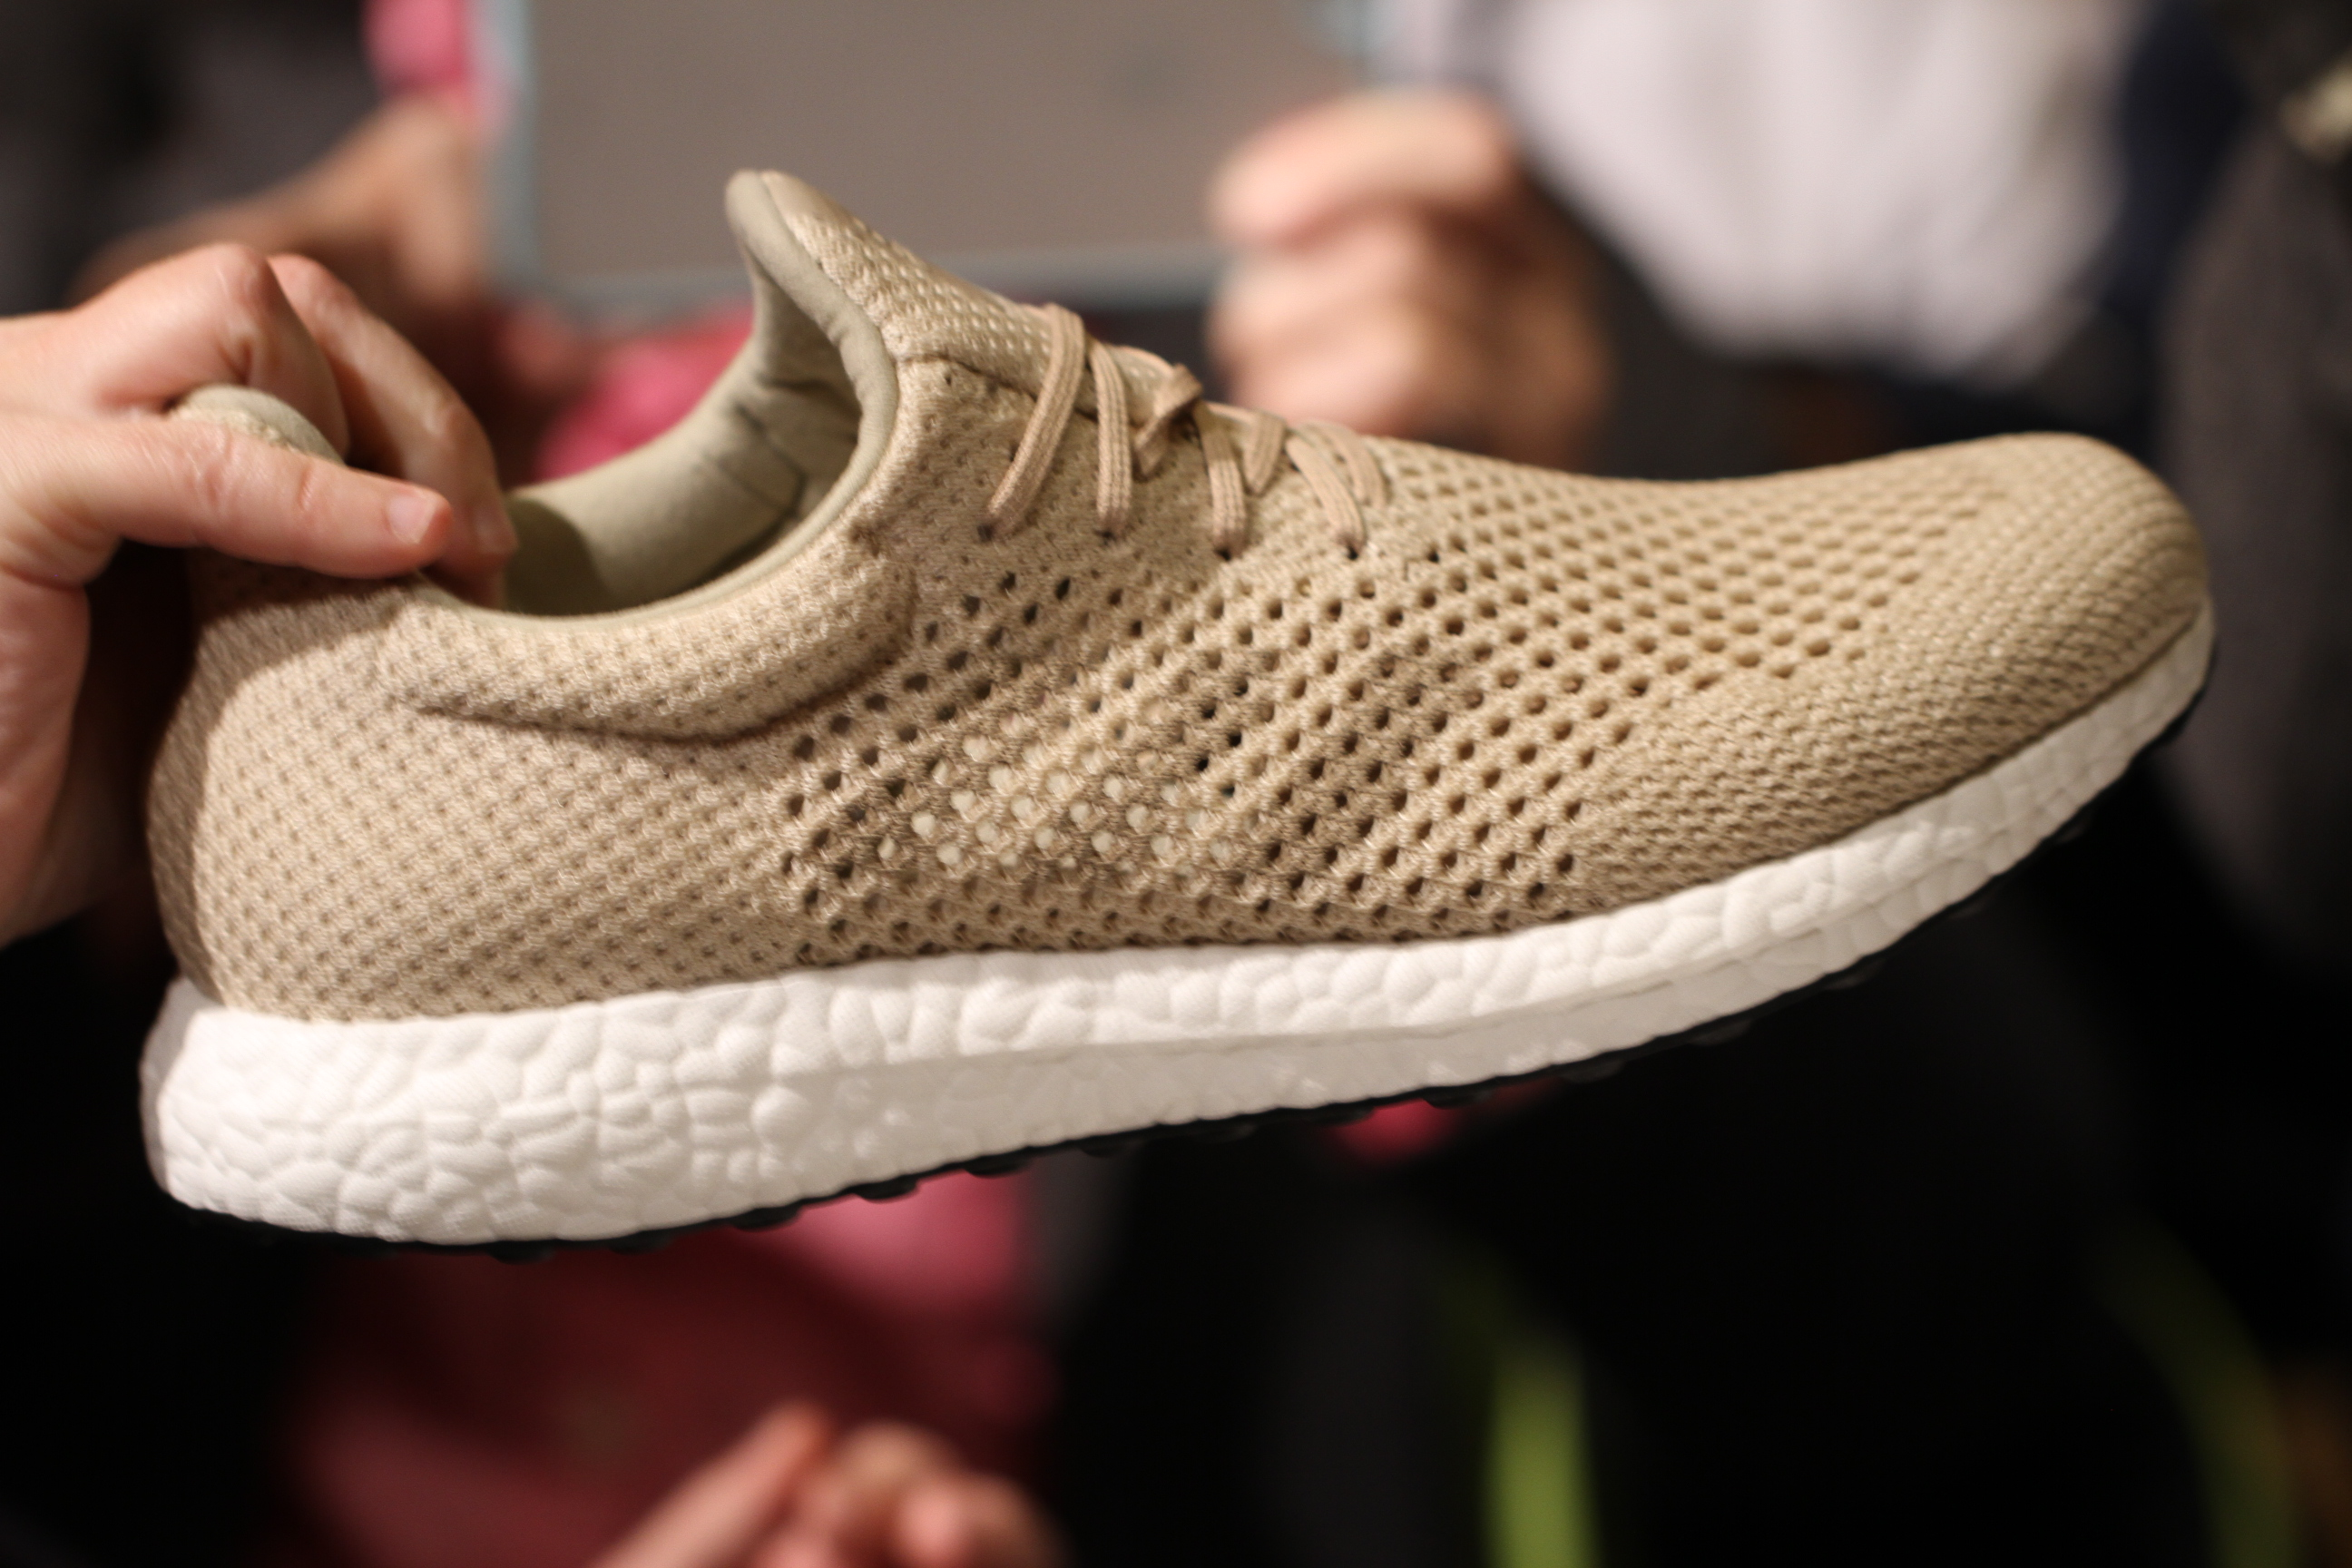 best sneakers 0b53d 03e4f These Adidas shoes are biodegradable   TechCrunch